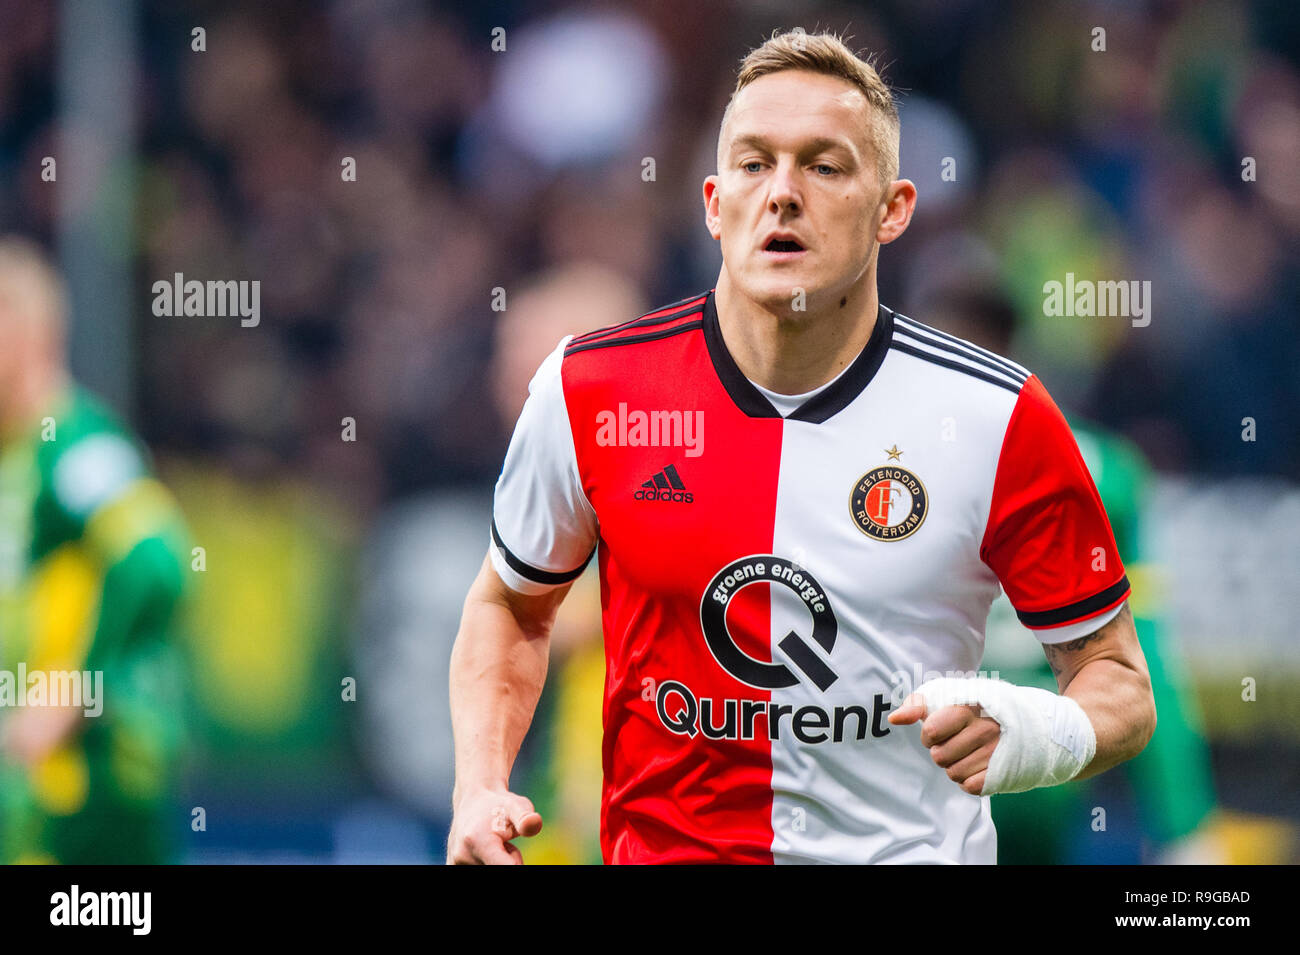 5fa13f1c9dd Feyenoord Stock Photos   Feyenoord Stock Images - Alamy